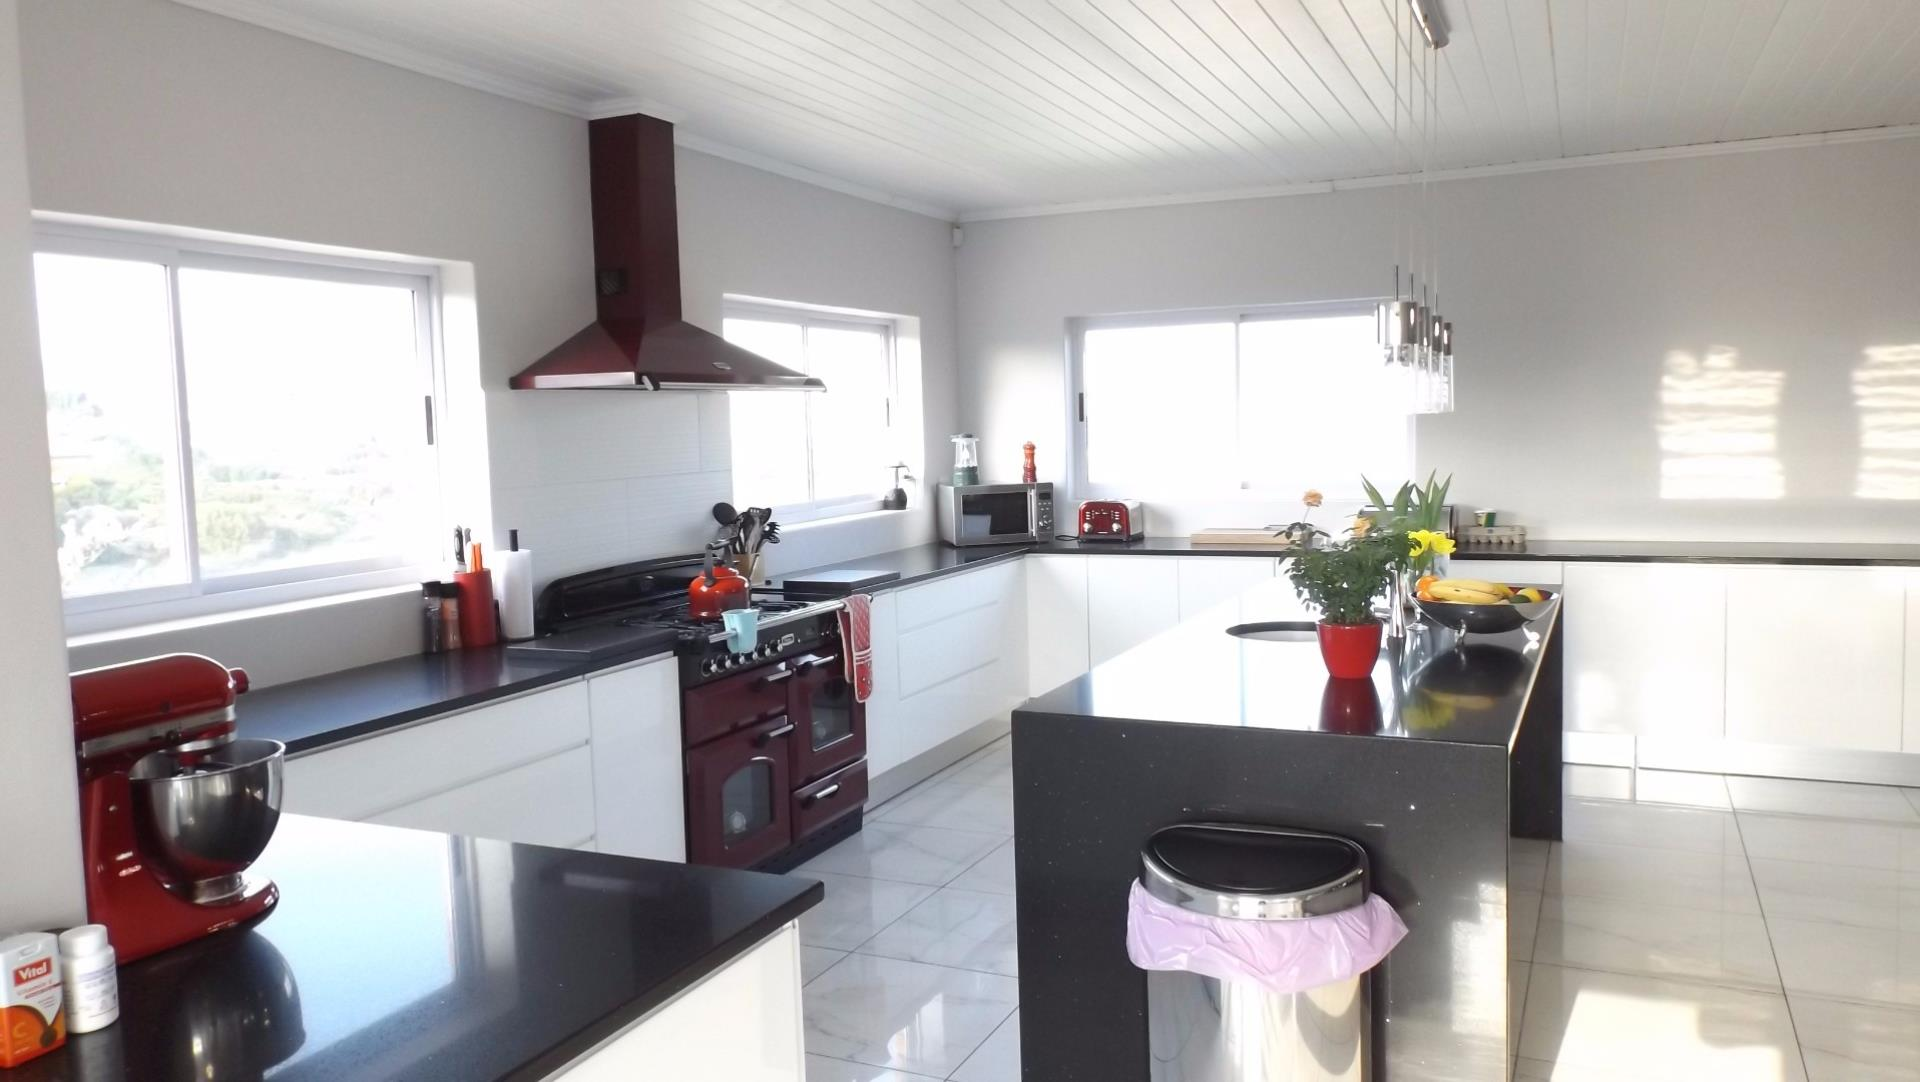 House For Sale In Bettys Bay, Bettys Bay, Western Cape for R 3,995,000